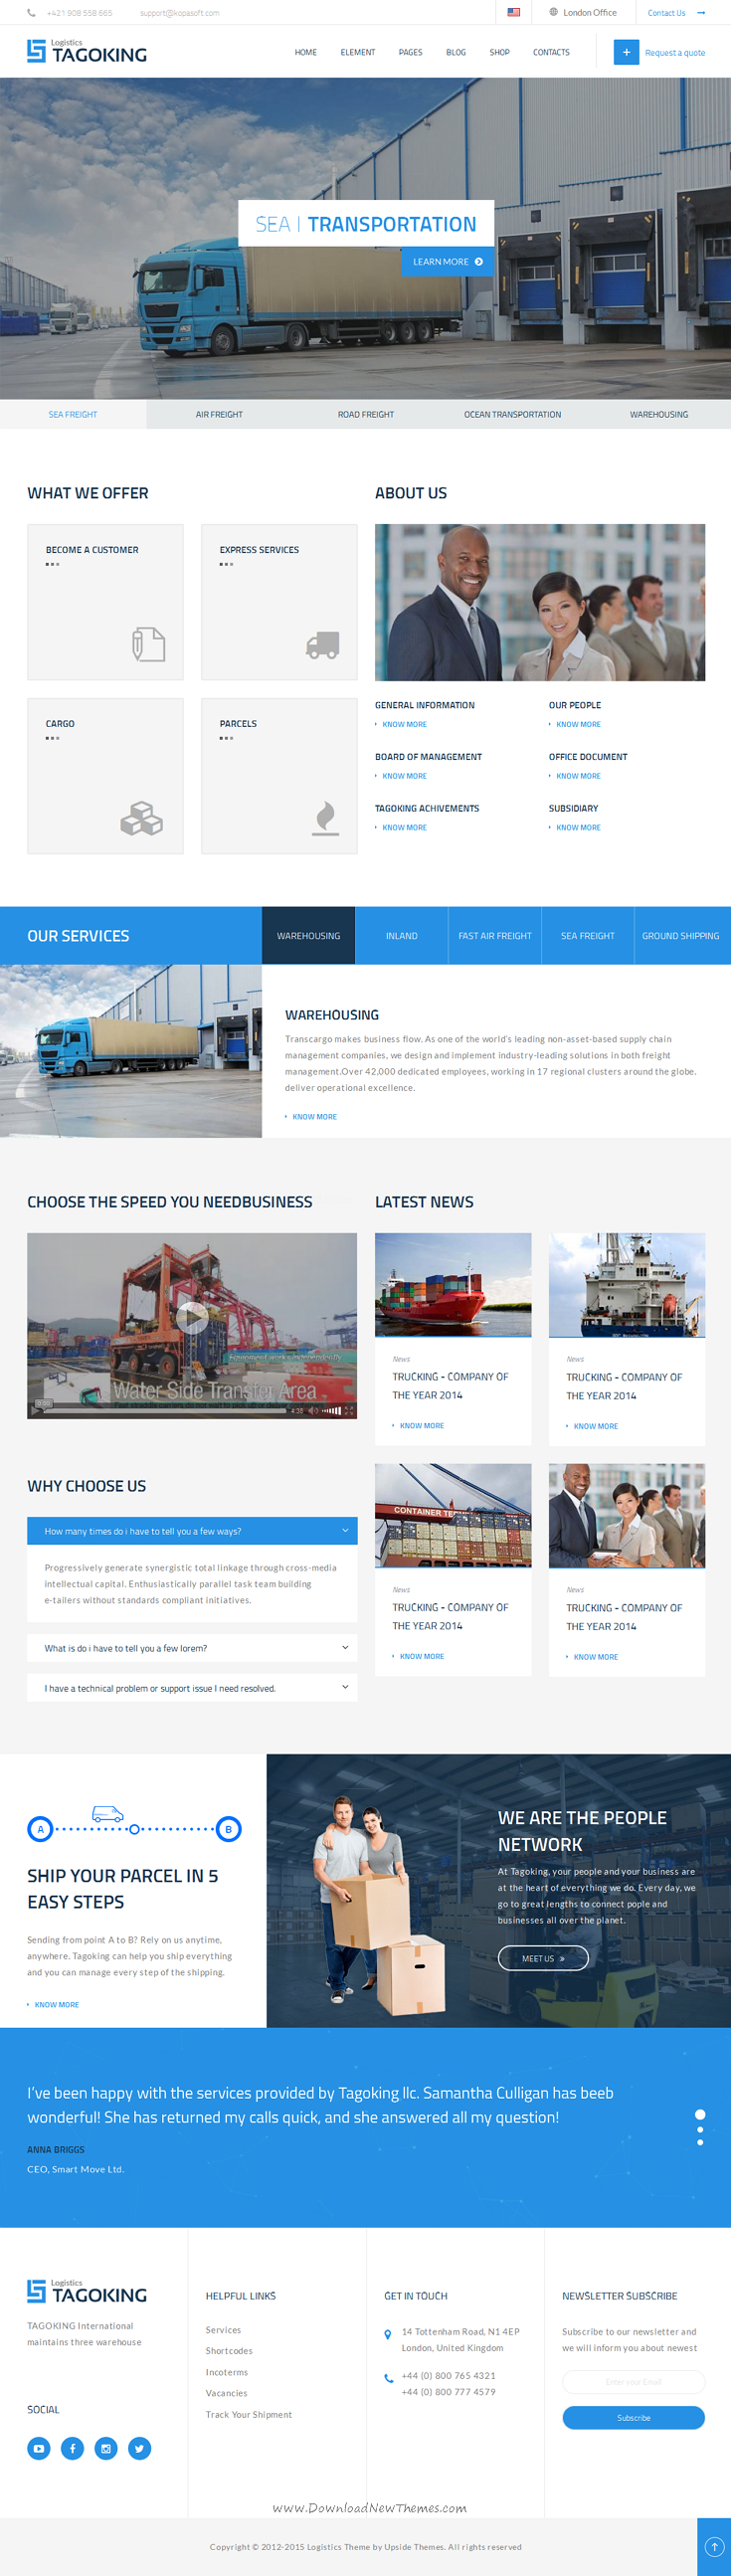 Tagoking Freight And Logistics HTML Template Professional - Professional website templates